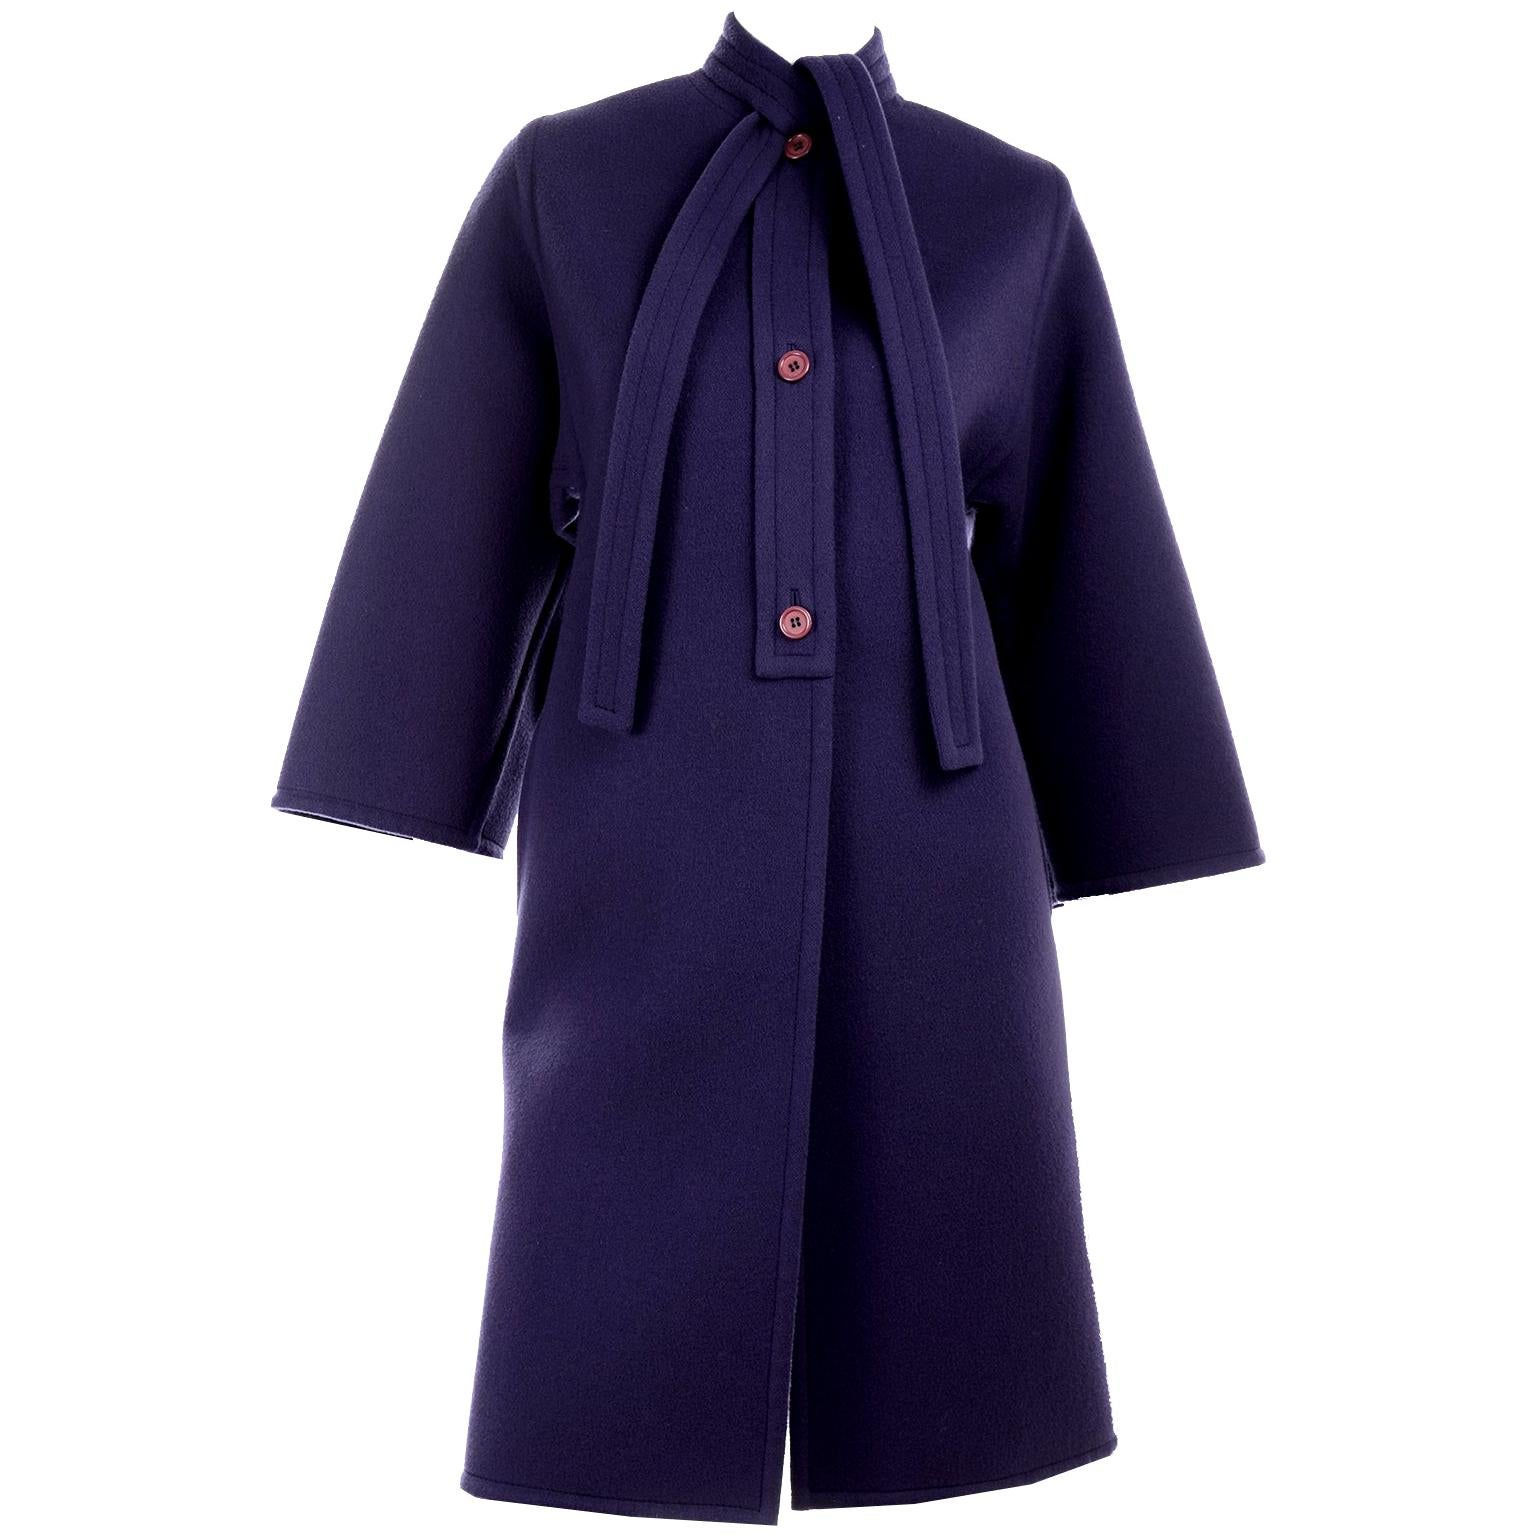 James Galanos Vintage Rich Purple Wool Coat with Tie & Pockets